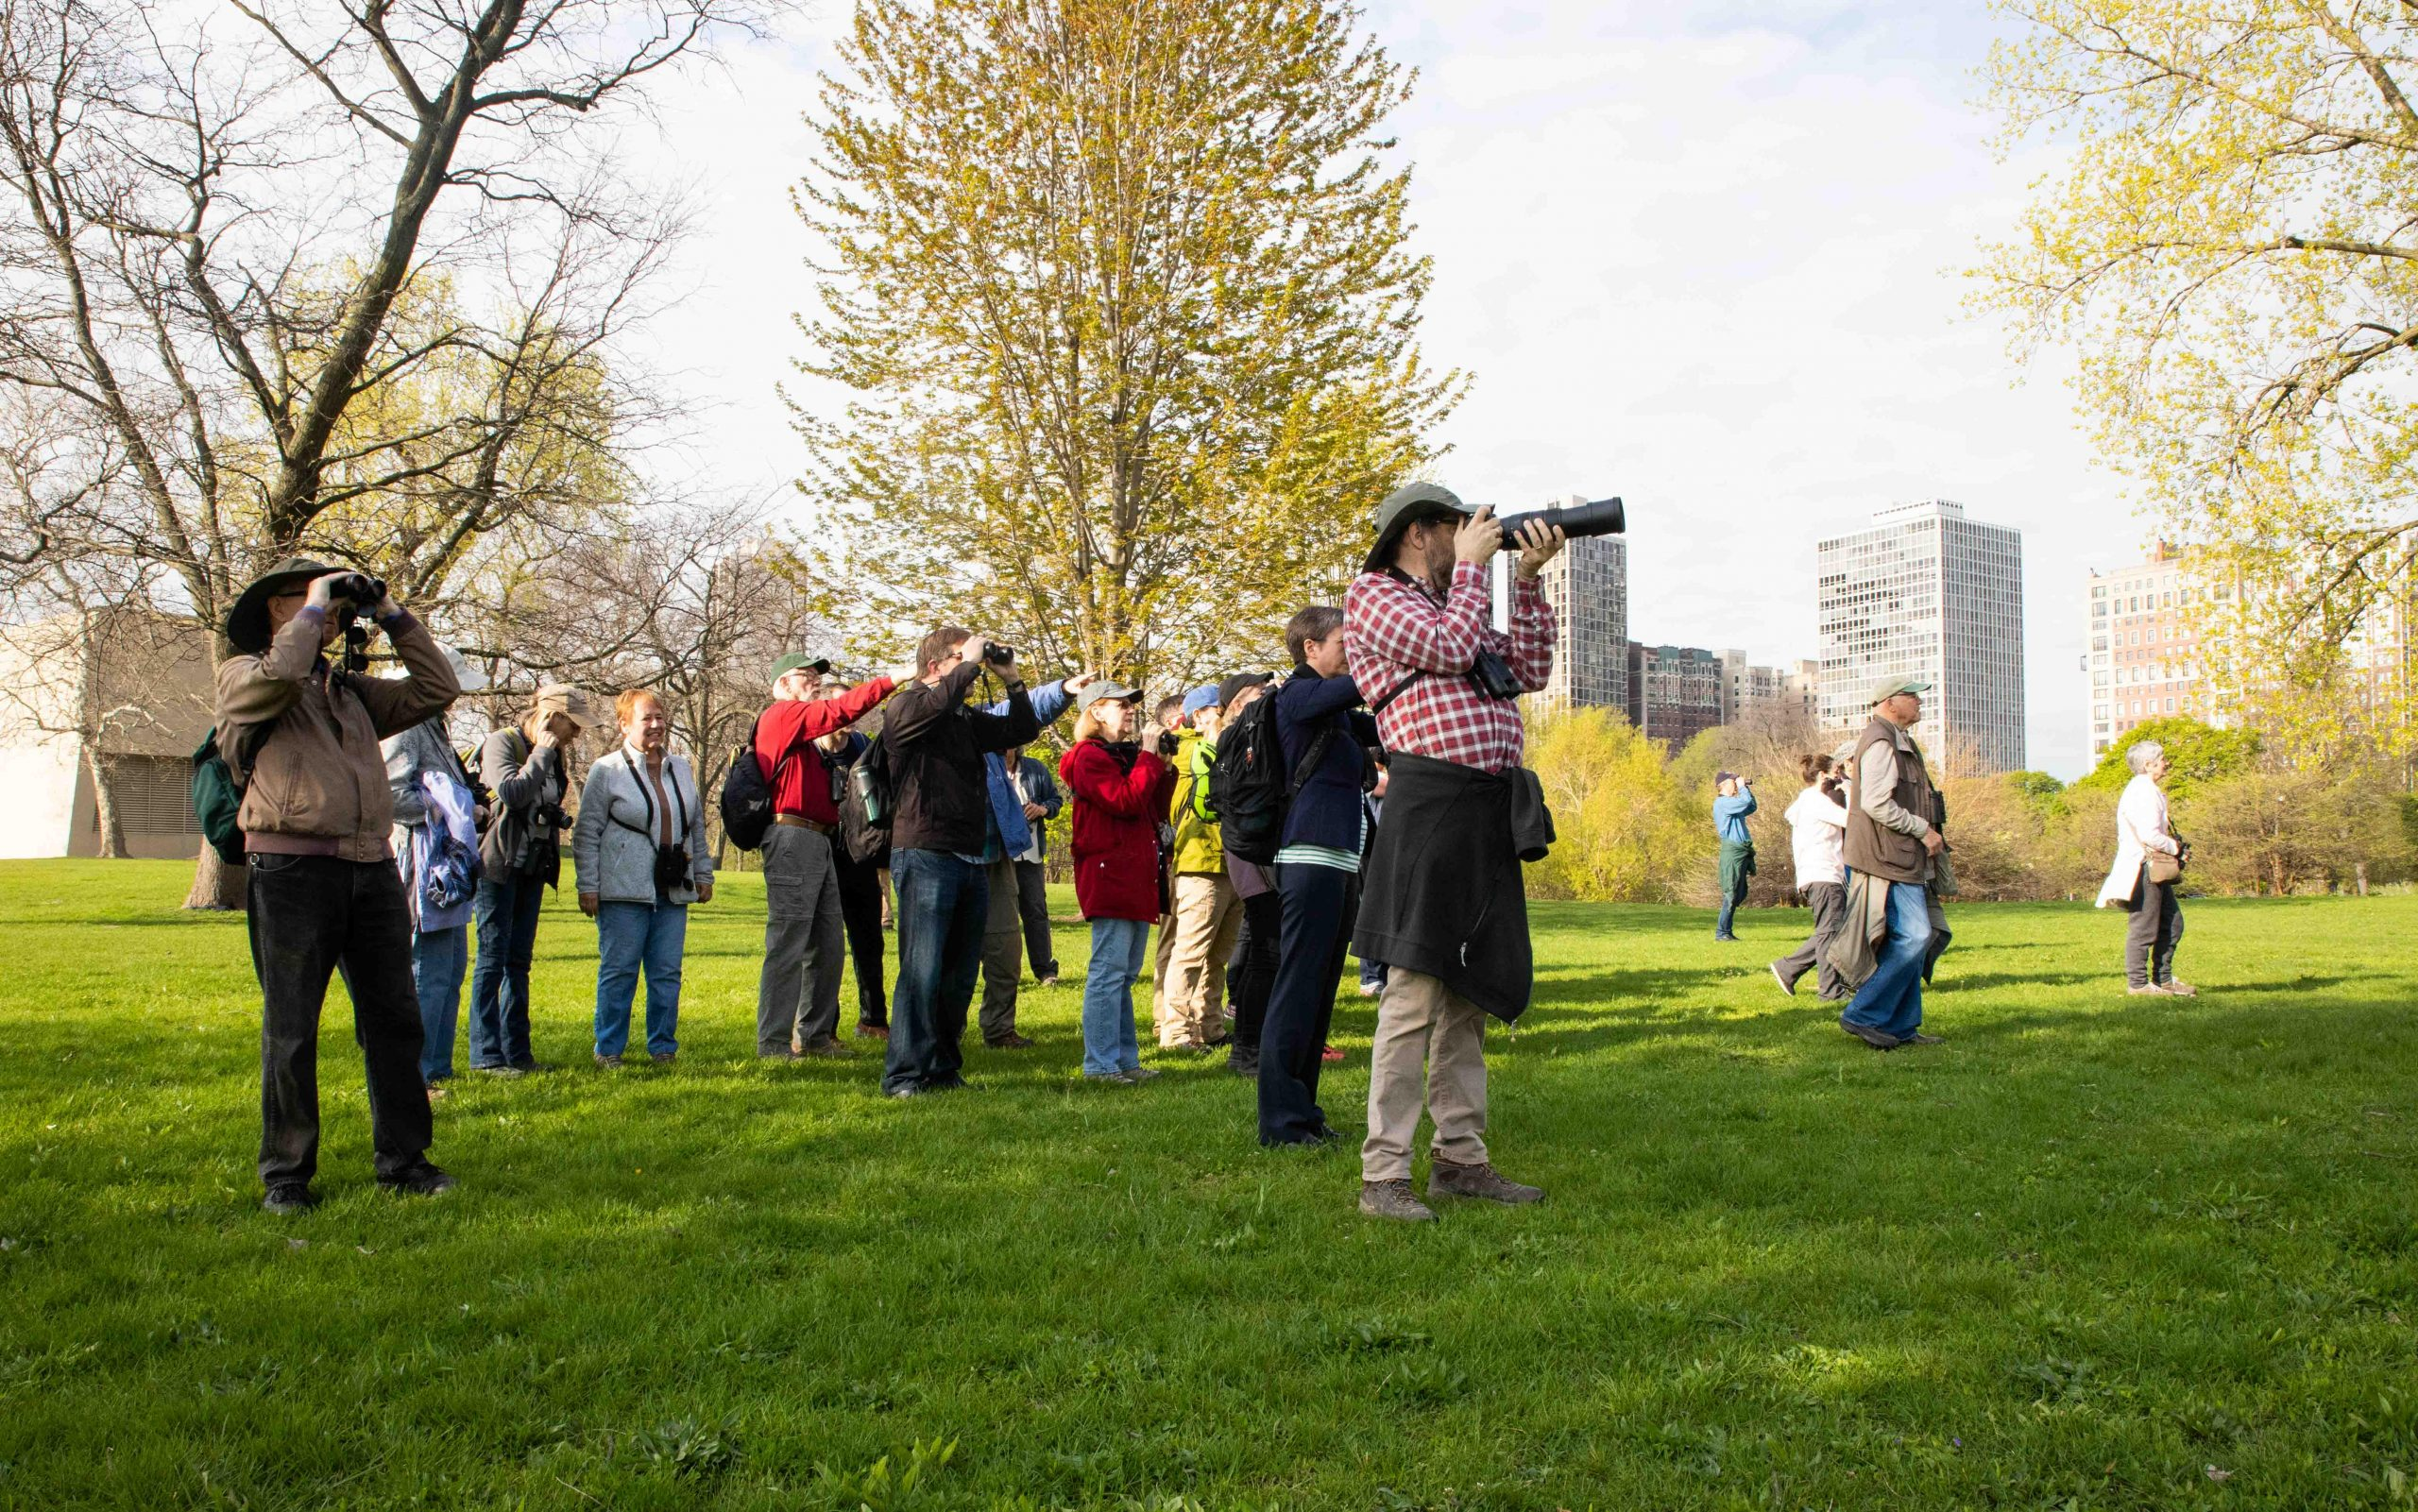 Participants stop to observe birds as they make their way around the water during the Chicago Ornithological Society's North Pond Bird Walk in May 2019.